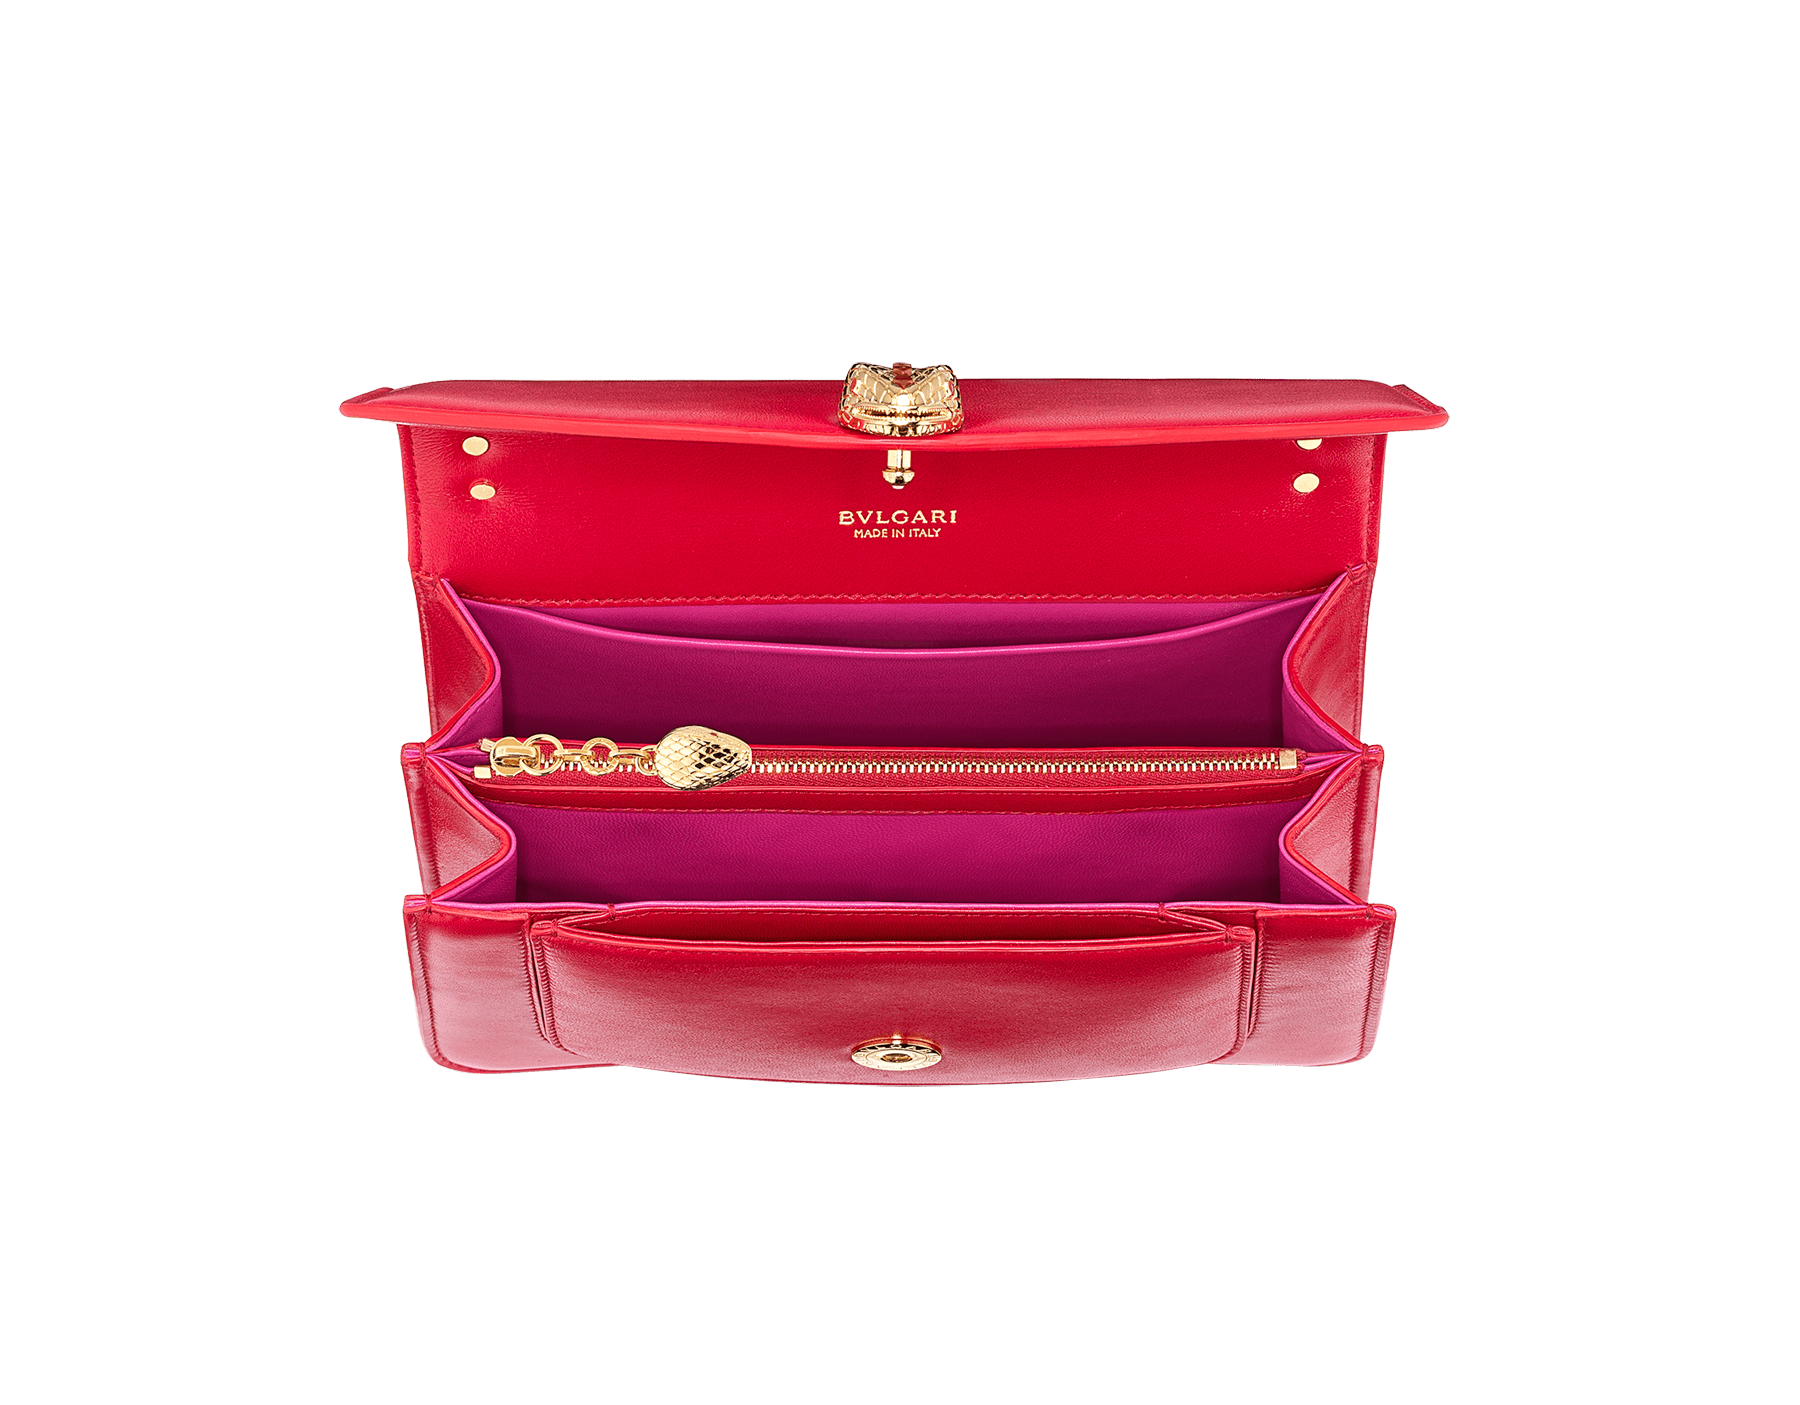 """Serpenti Forever"" maxi chain crossbody bag in Amaranth Garnet red nappa leather, with Pink Spinel fuchsia nappa leather inner lining. New Serpenti head closure in gold-plated brass, finished with small red carnelian scales in the middle and red enamel eyes. 1138-MCN image 6"